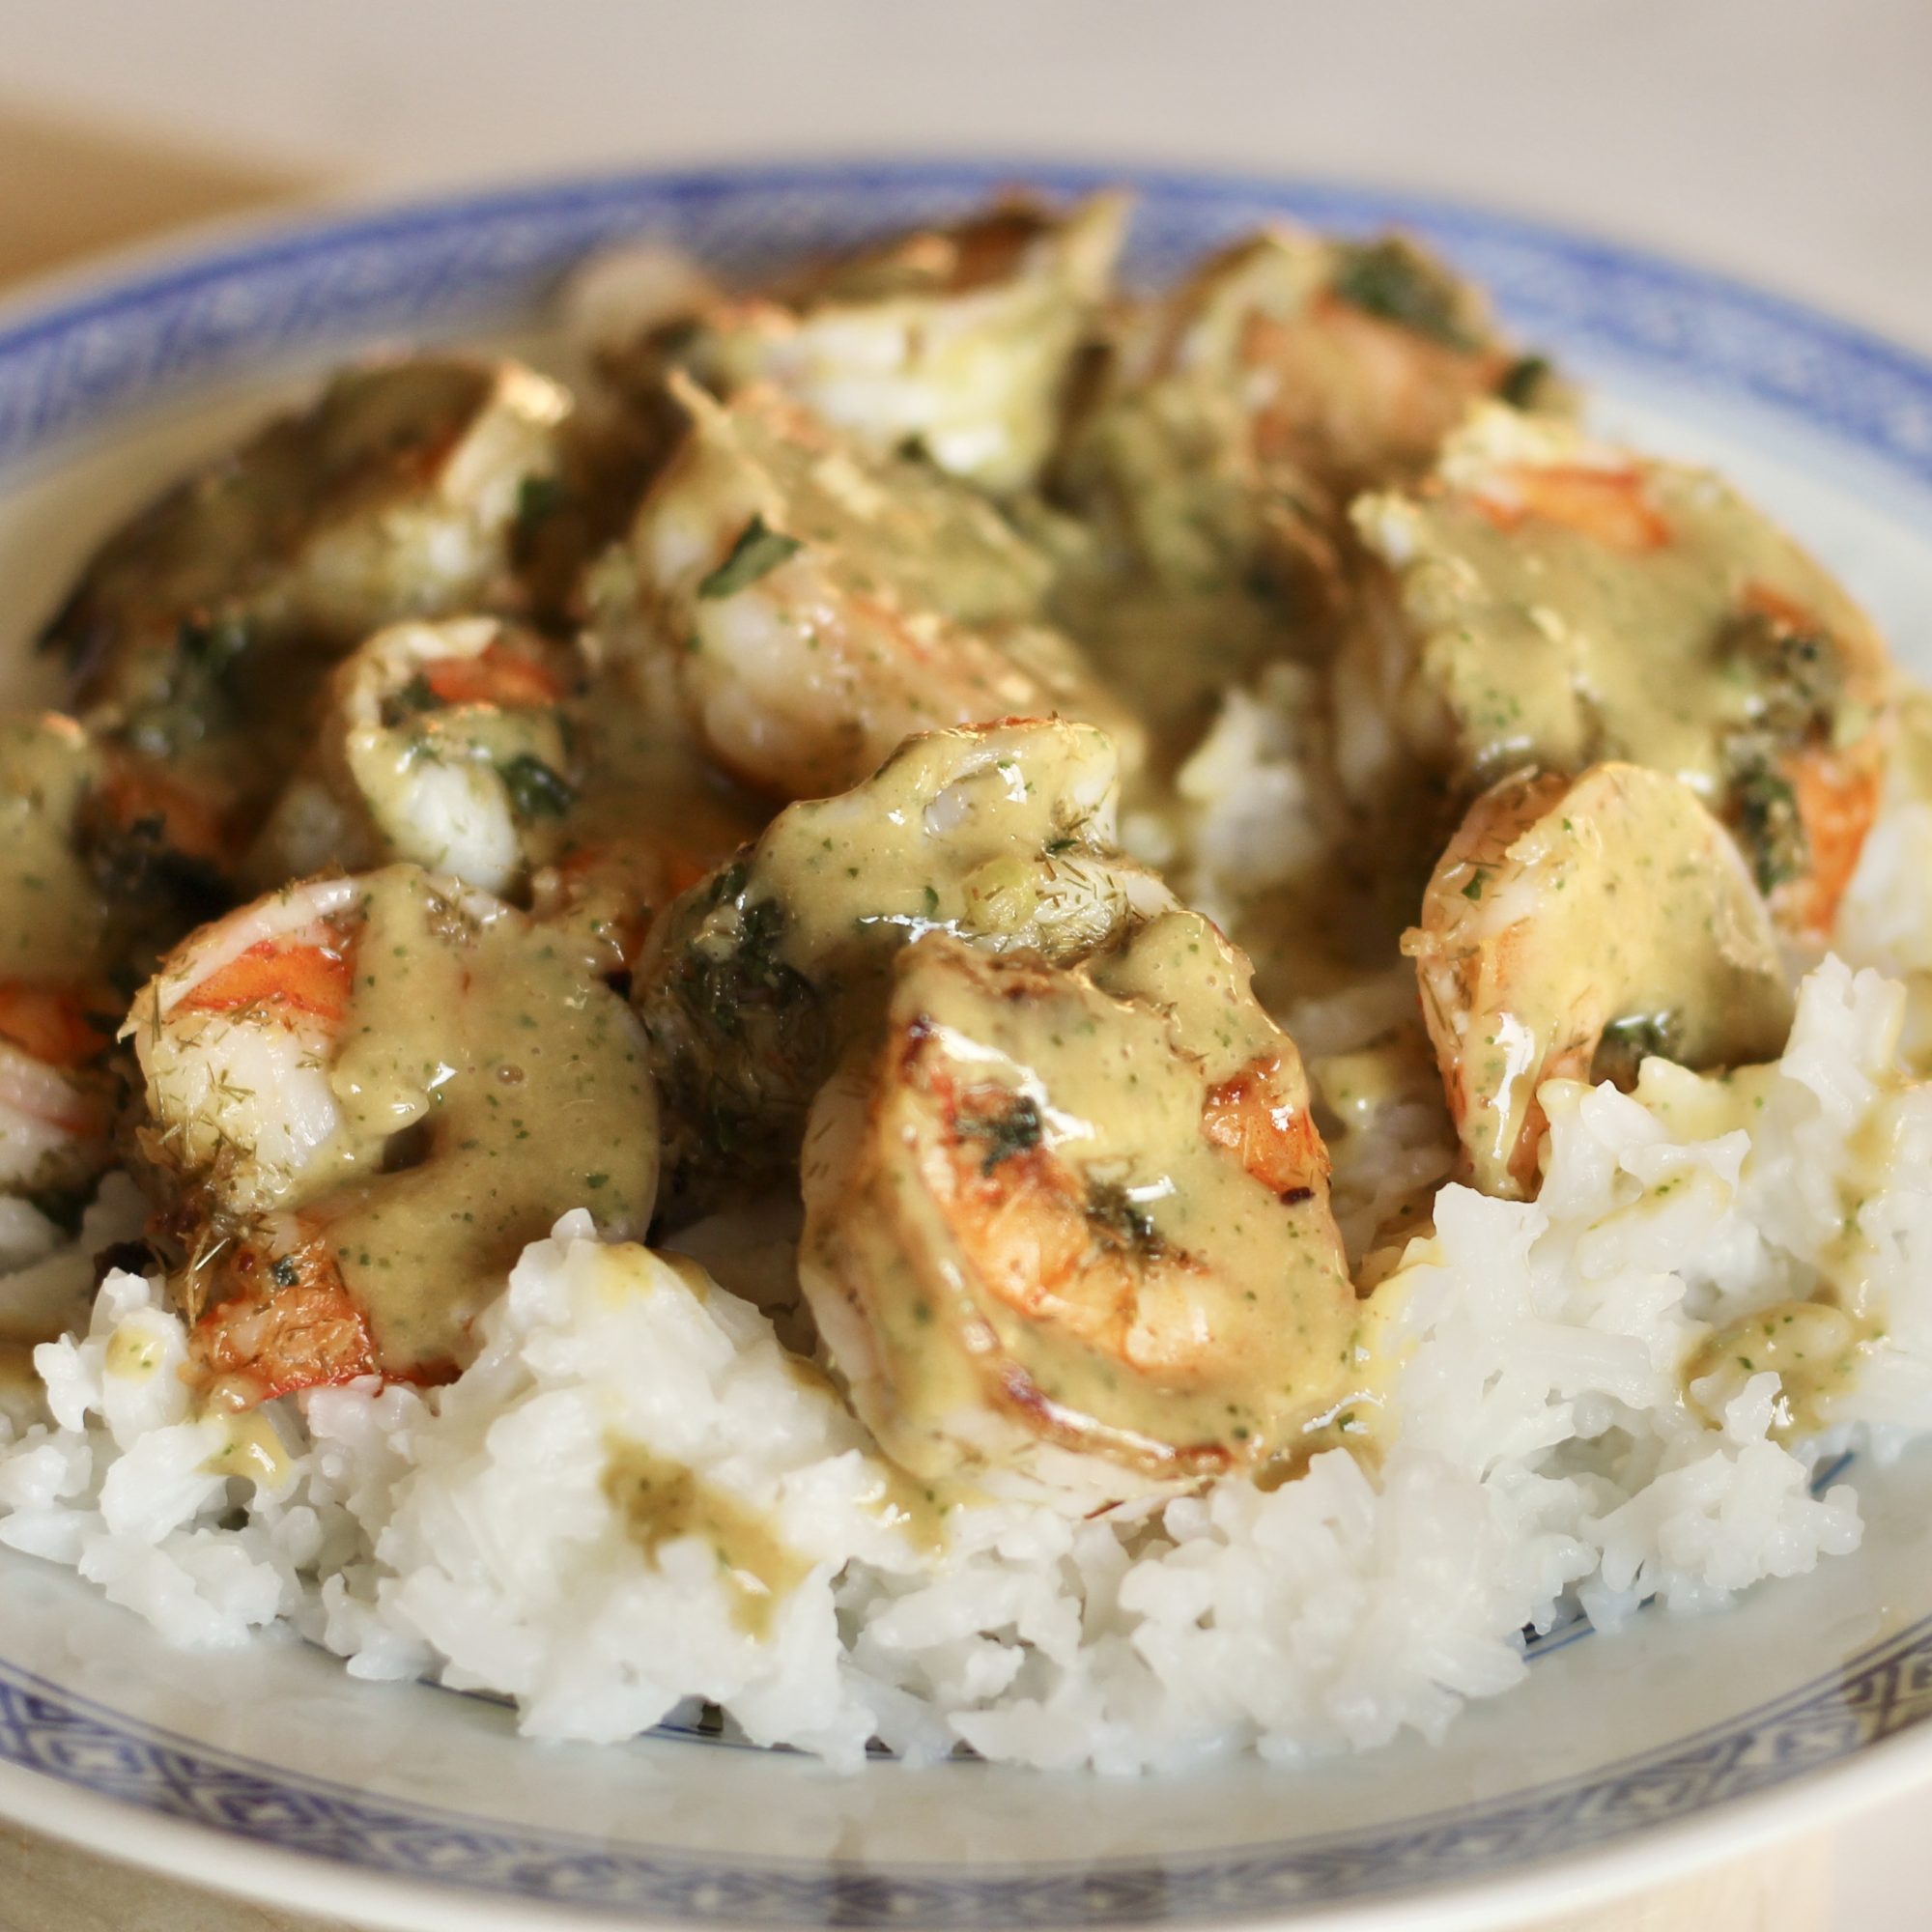 grilled prawns with sauce over rice